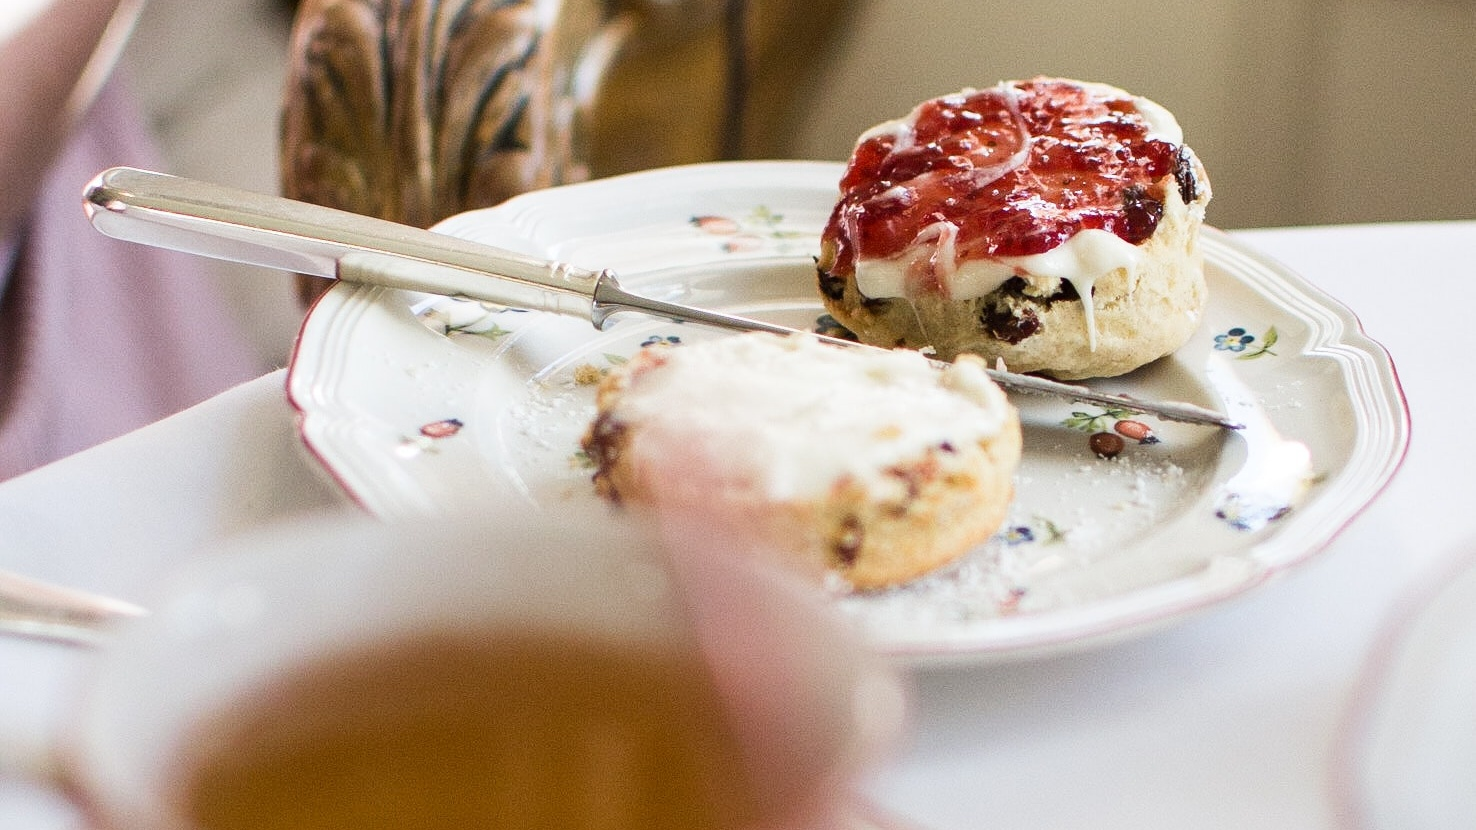 You Can Now Get Vegan Cream Teas at 350 National Trust Locations